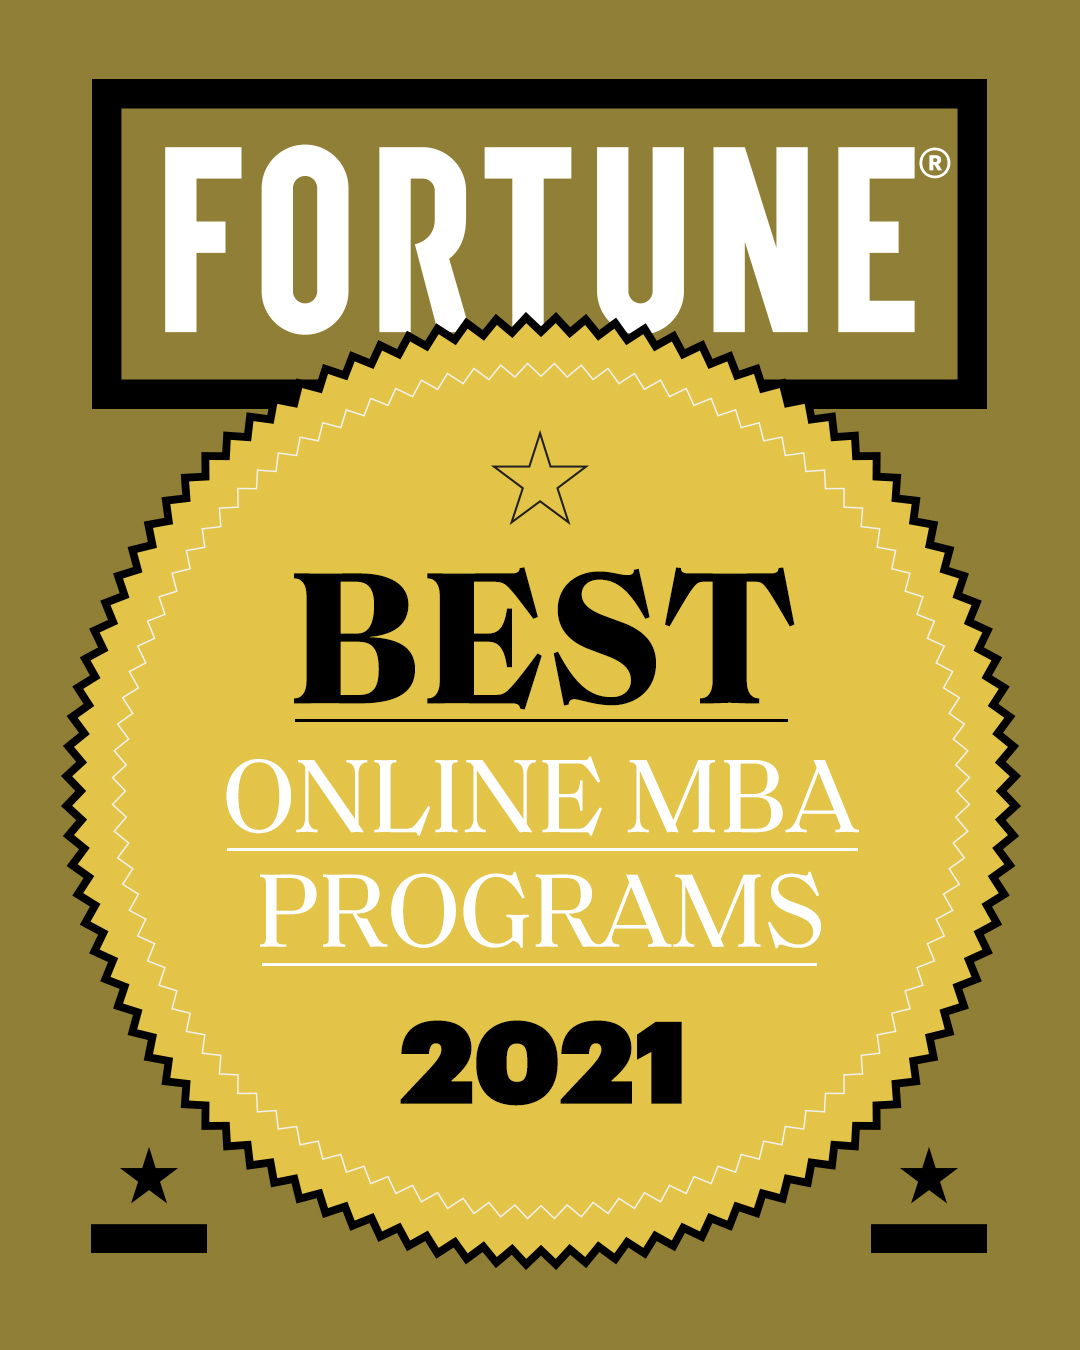 Fortune Education Online MBA Rankings